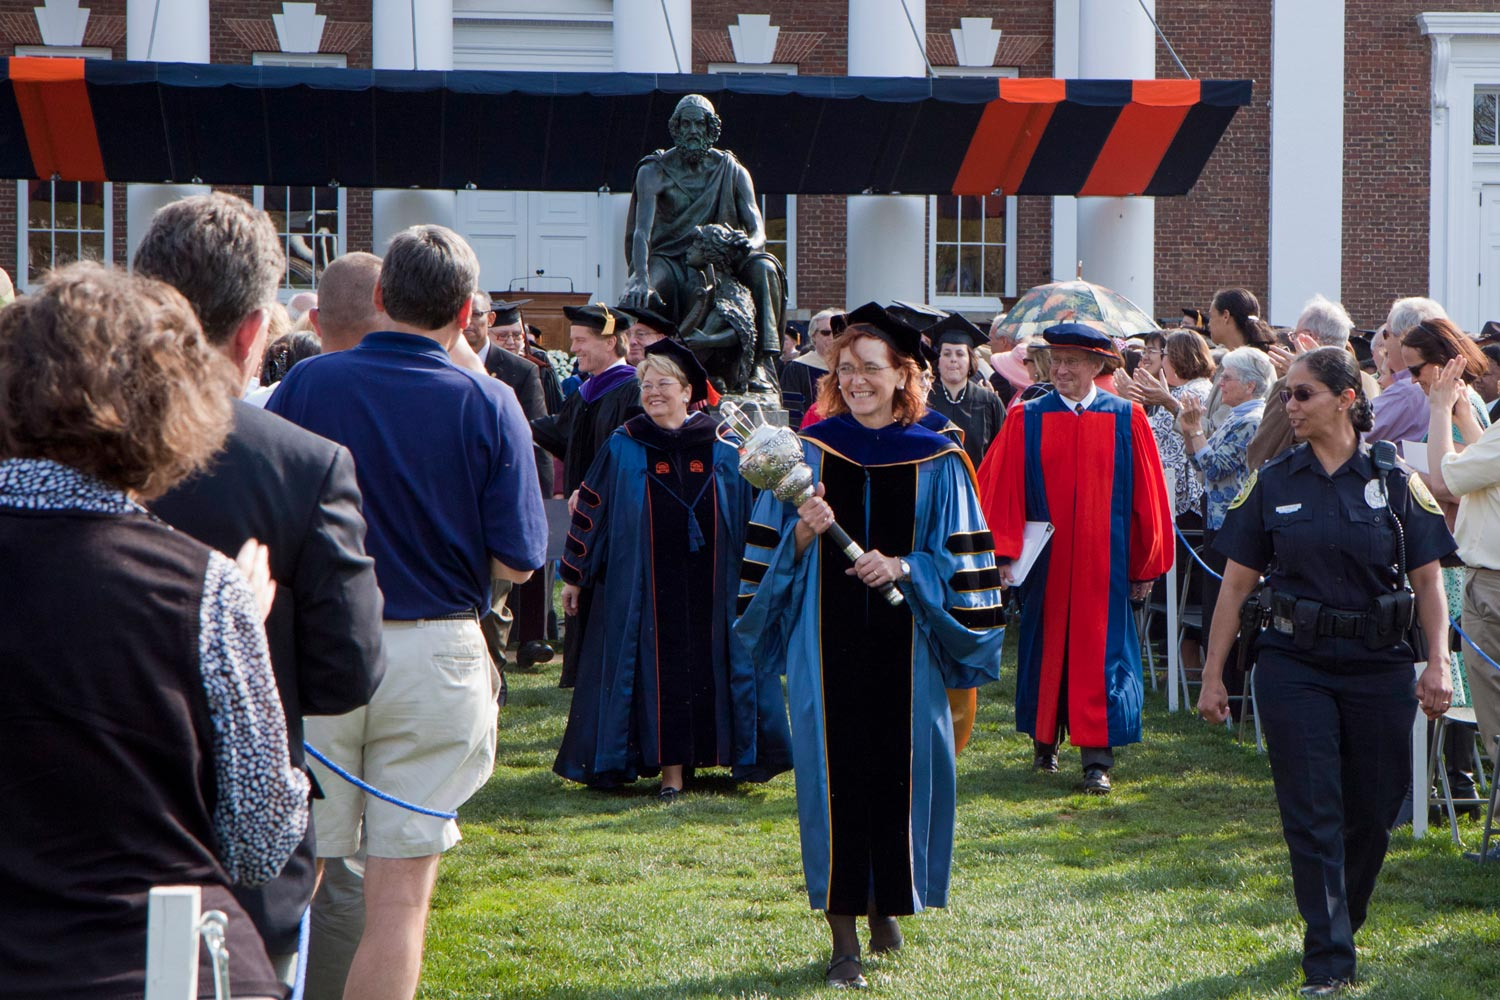 During her presidency, Teresa A. Sullivan advanced faculty hiring, student advising, University budgeting, Rotunda preservation and more.